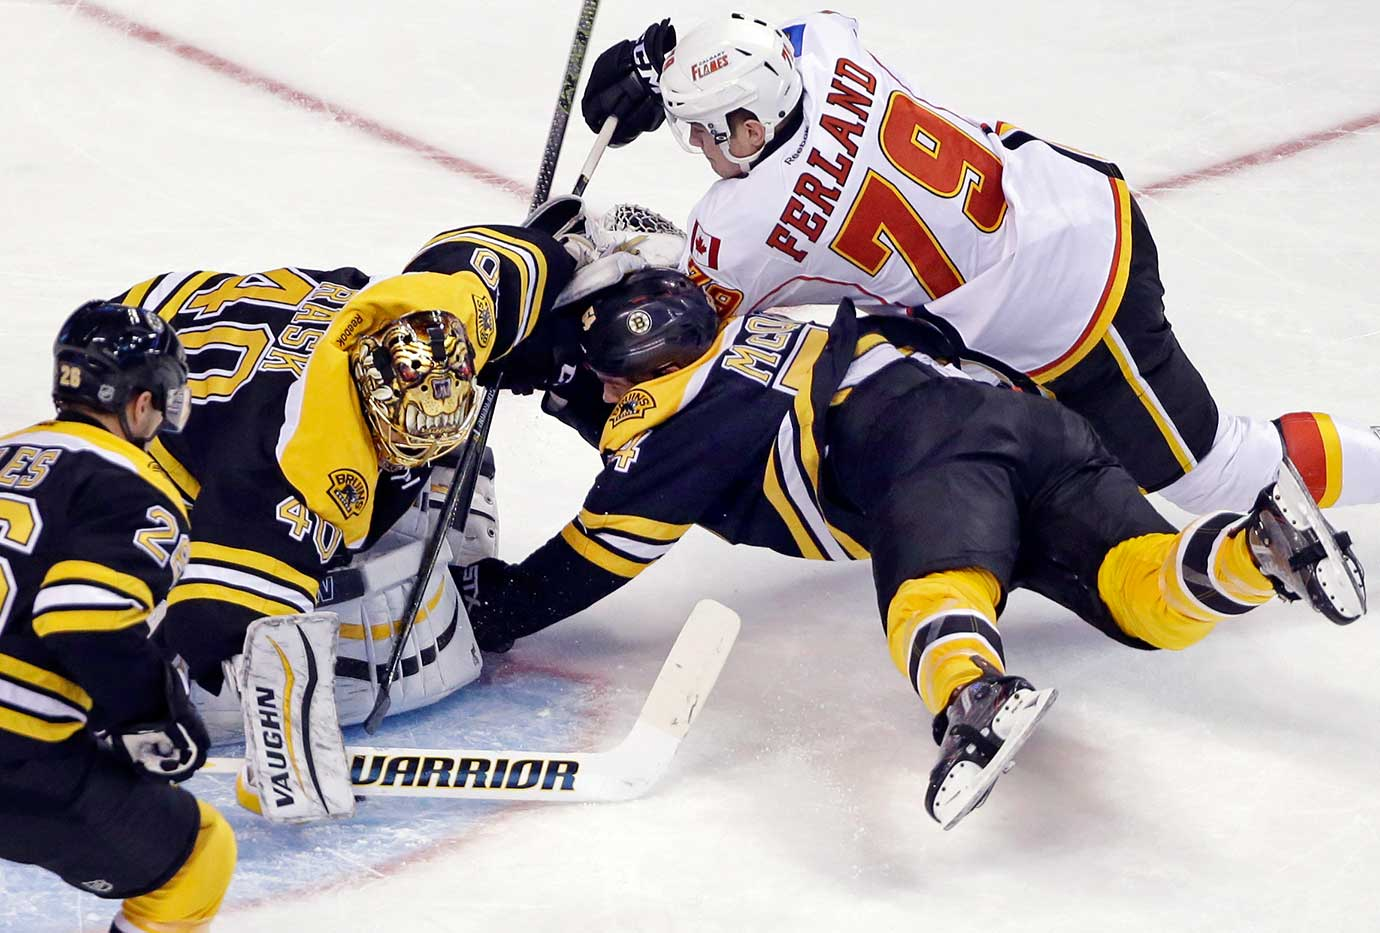 Boston Bruins defenseman Adam McQuaid dives for the puck to prevent Calgary's Micheal Ferland from scoring.